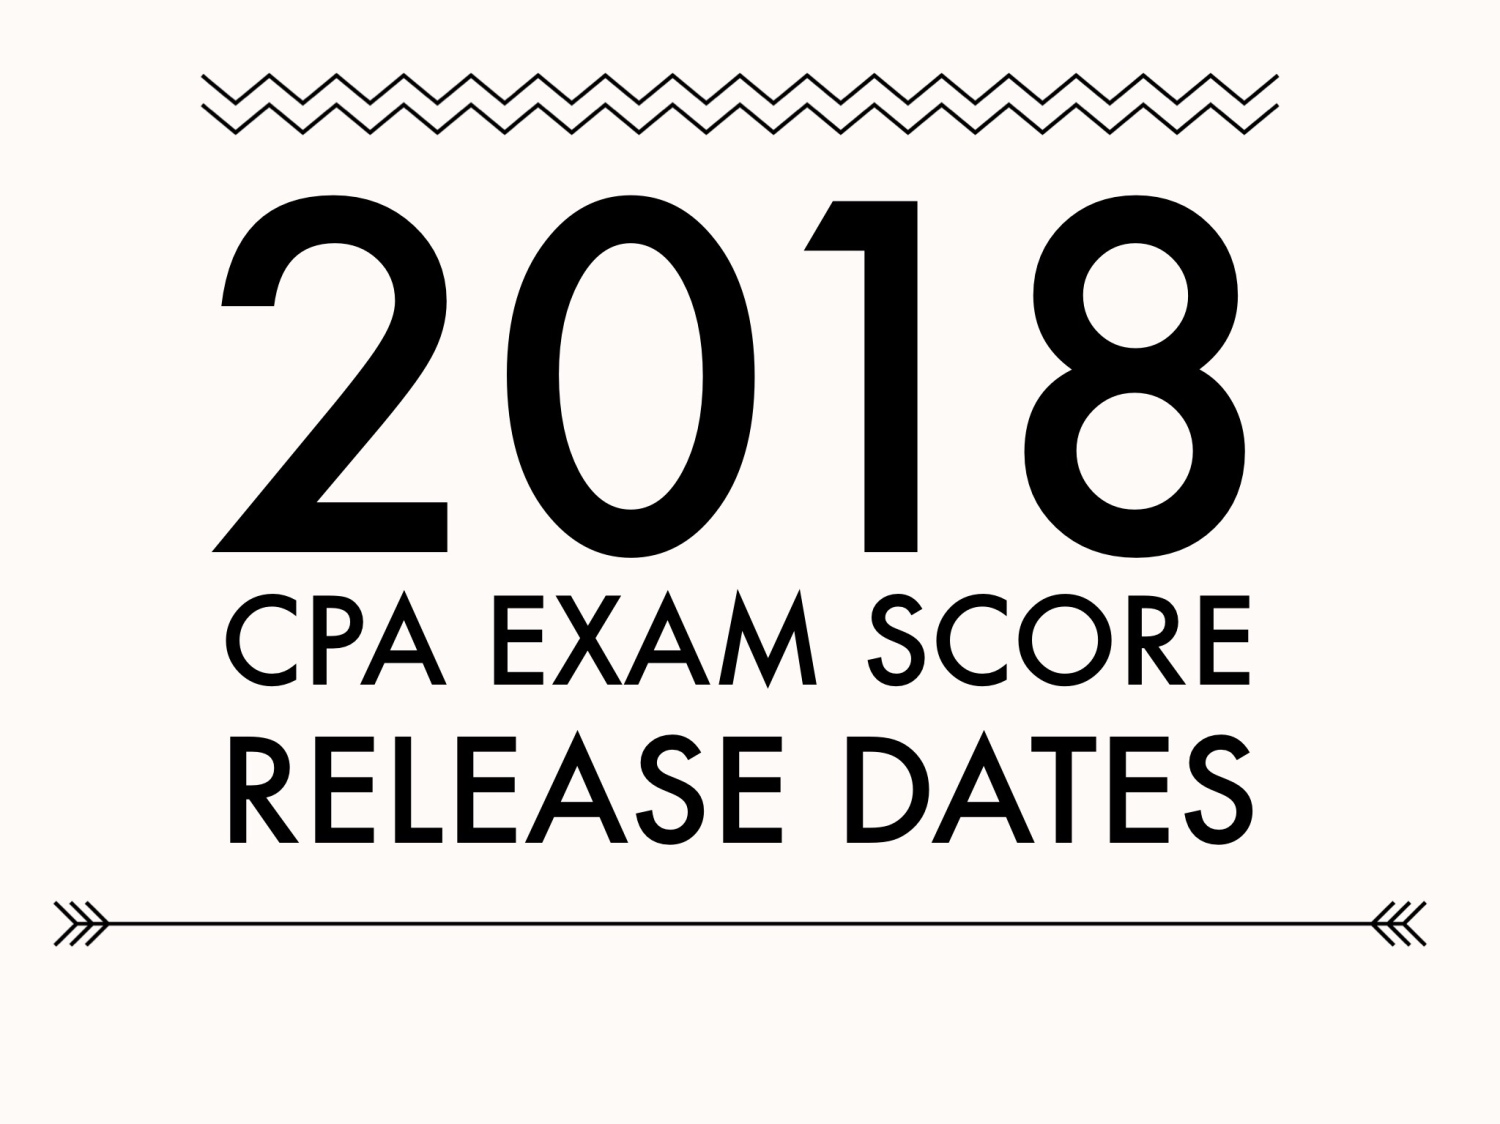 AICPA announces 2018 CPA Exam score release dates